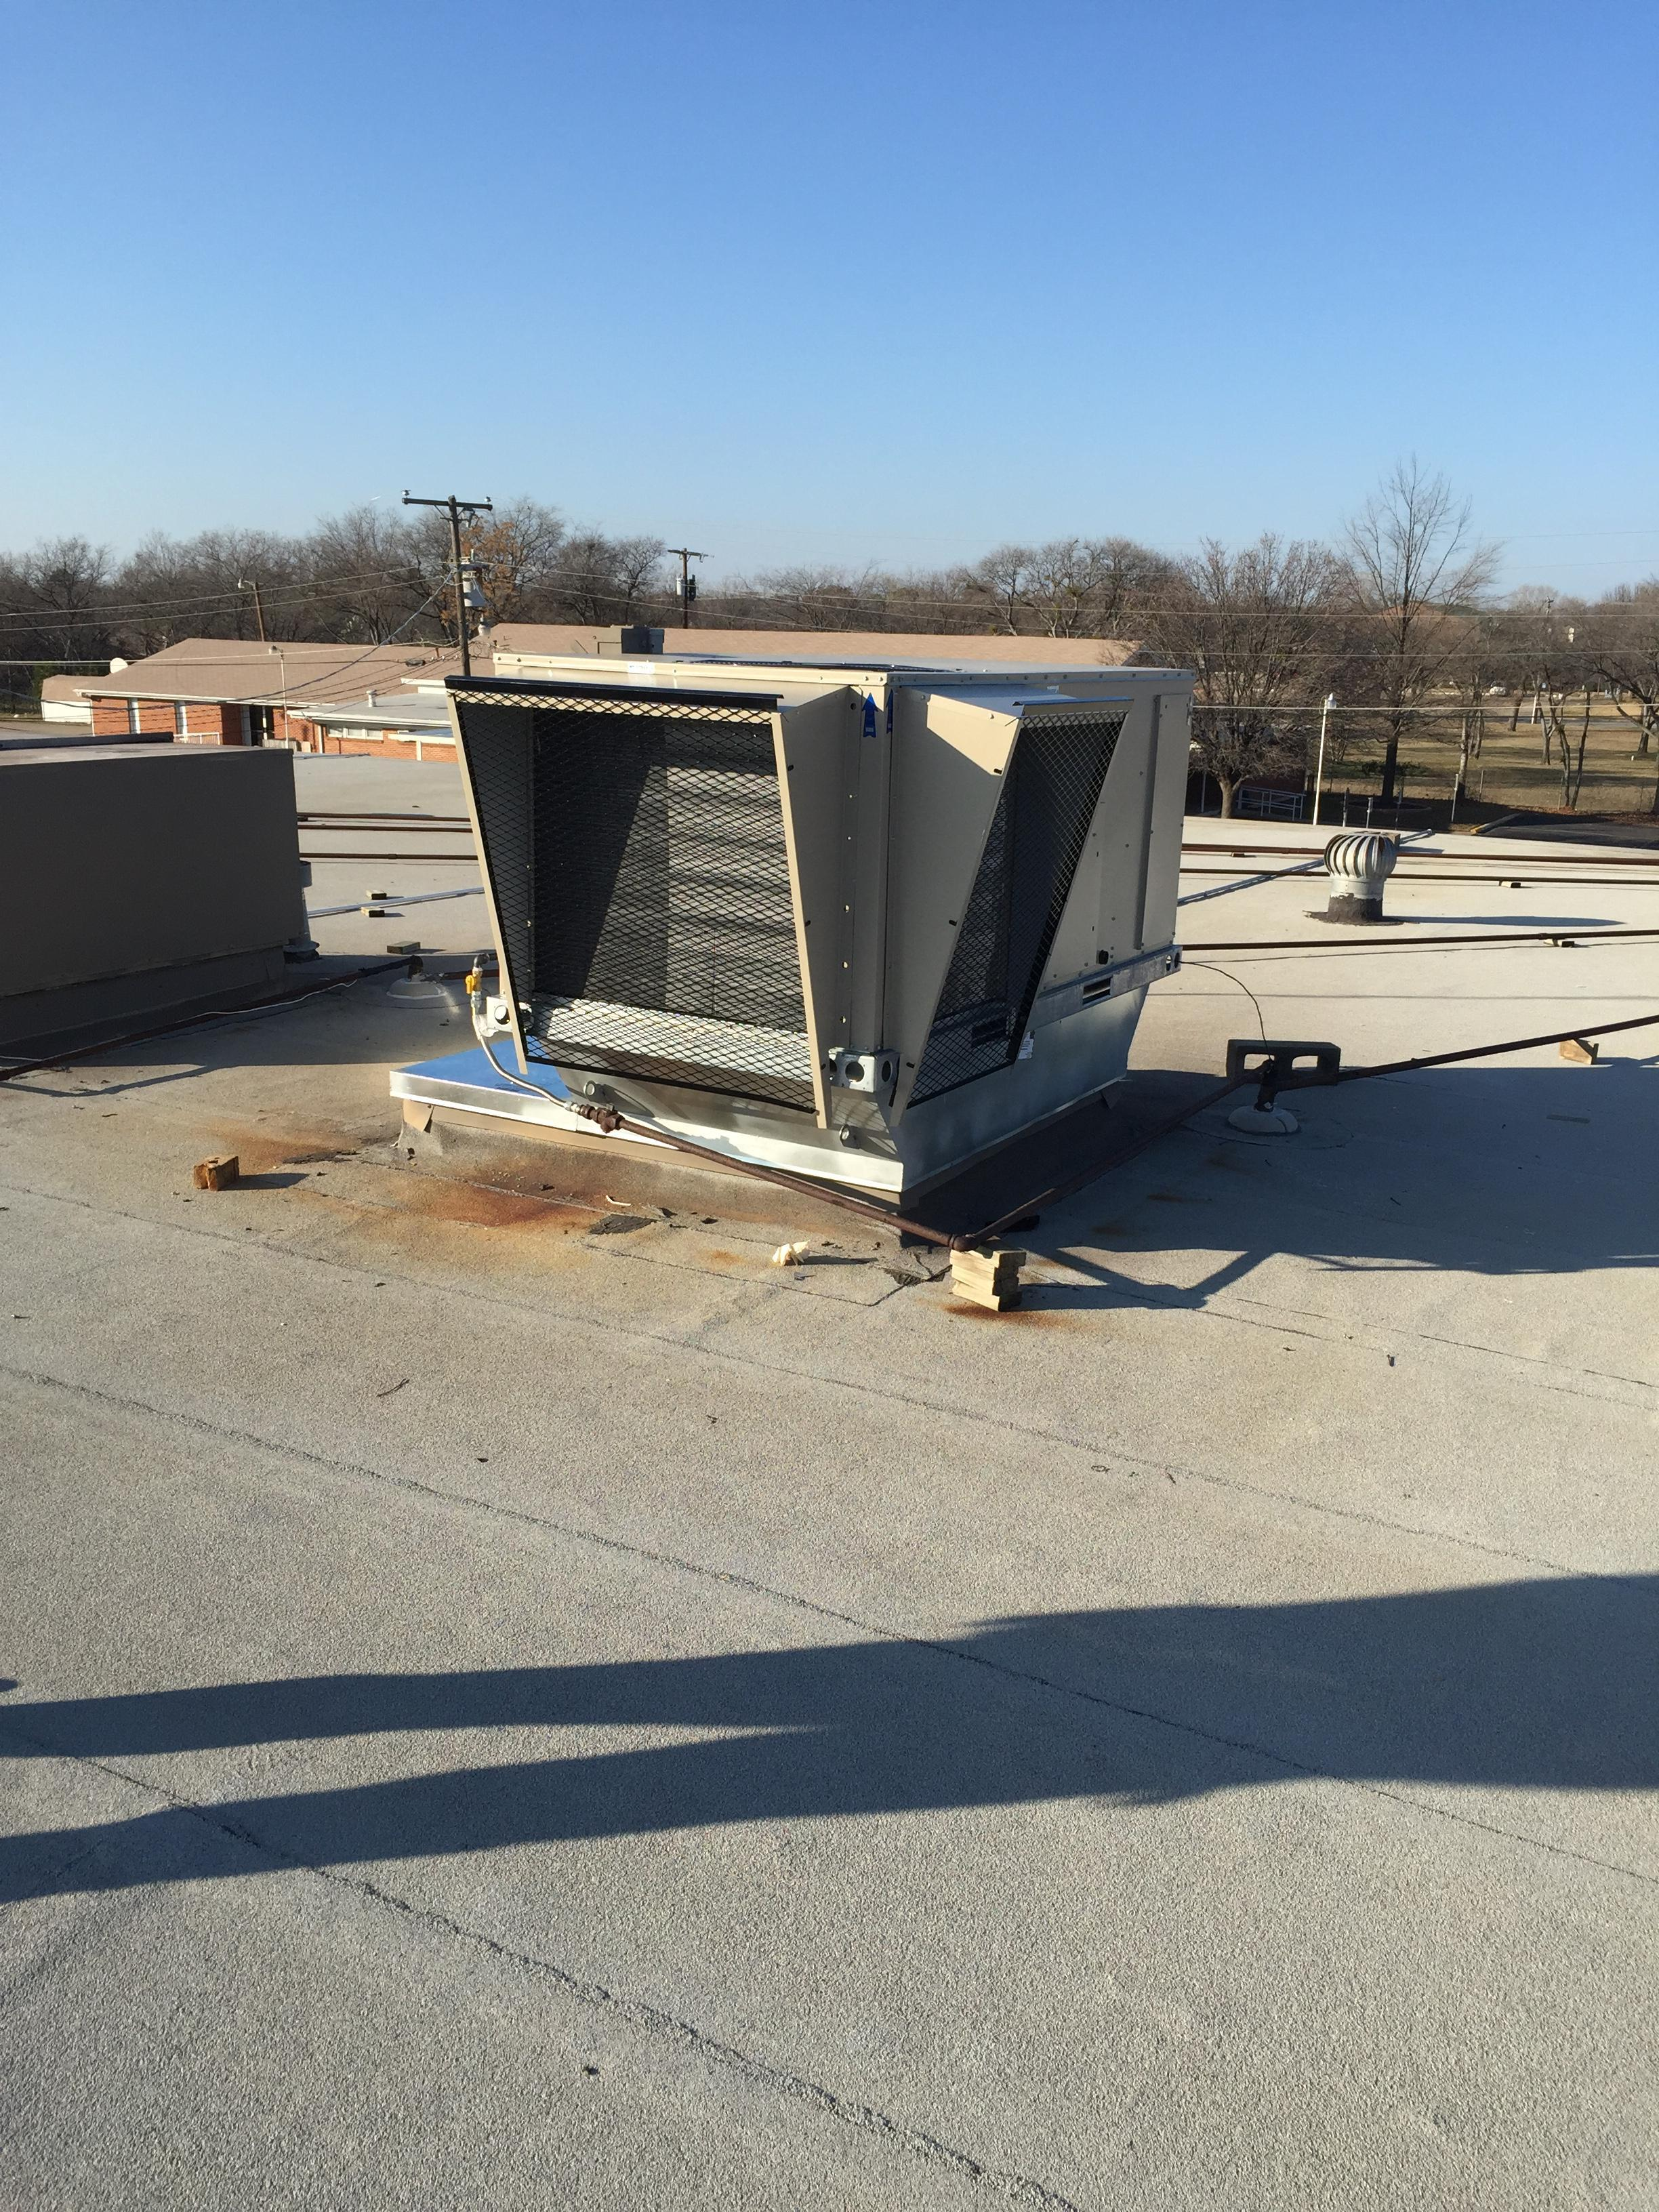 New  Lennox roof top that replaced the 1989 Lennox unit